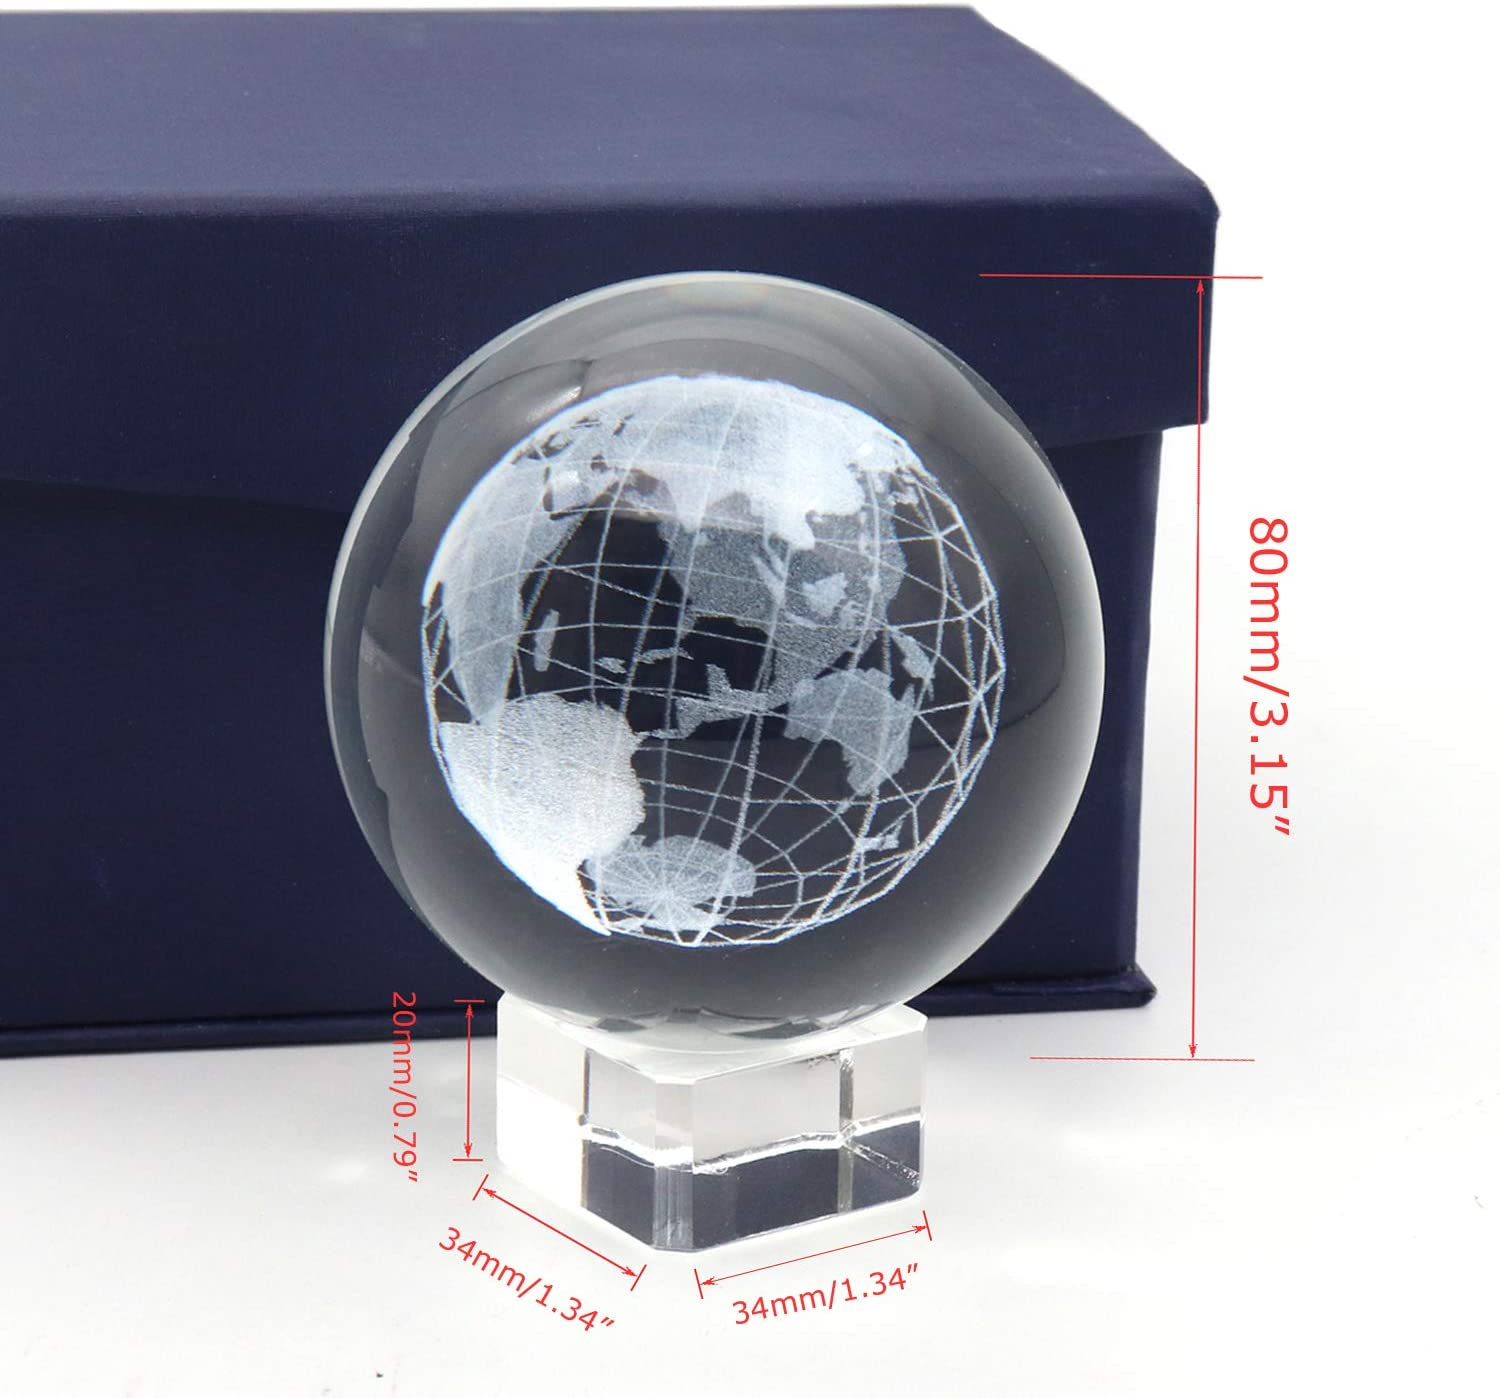 Omitfu 3D Crystal Globe Earth Ball Laser Engraved Glass Paperweight Display Ball Sphere with Clear Stand 80MM Diameter for Award Decor